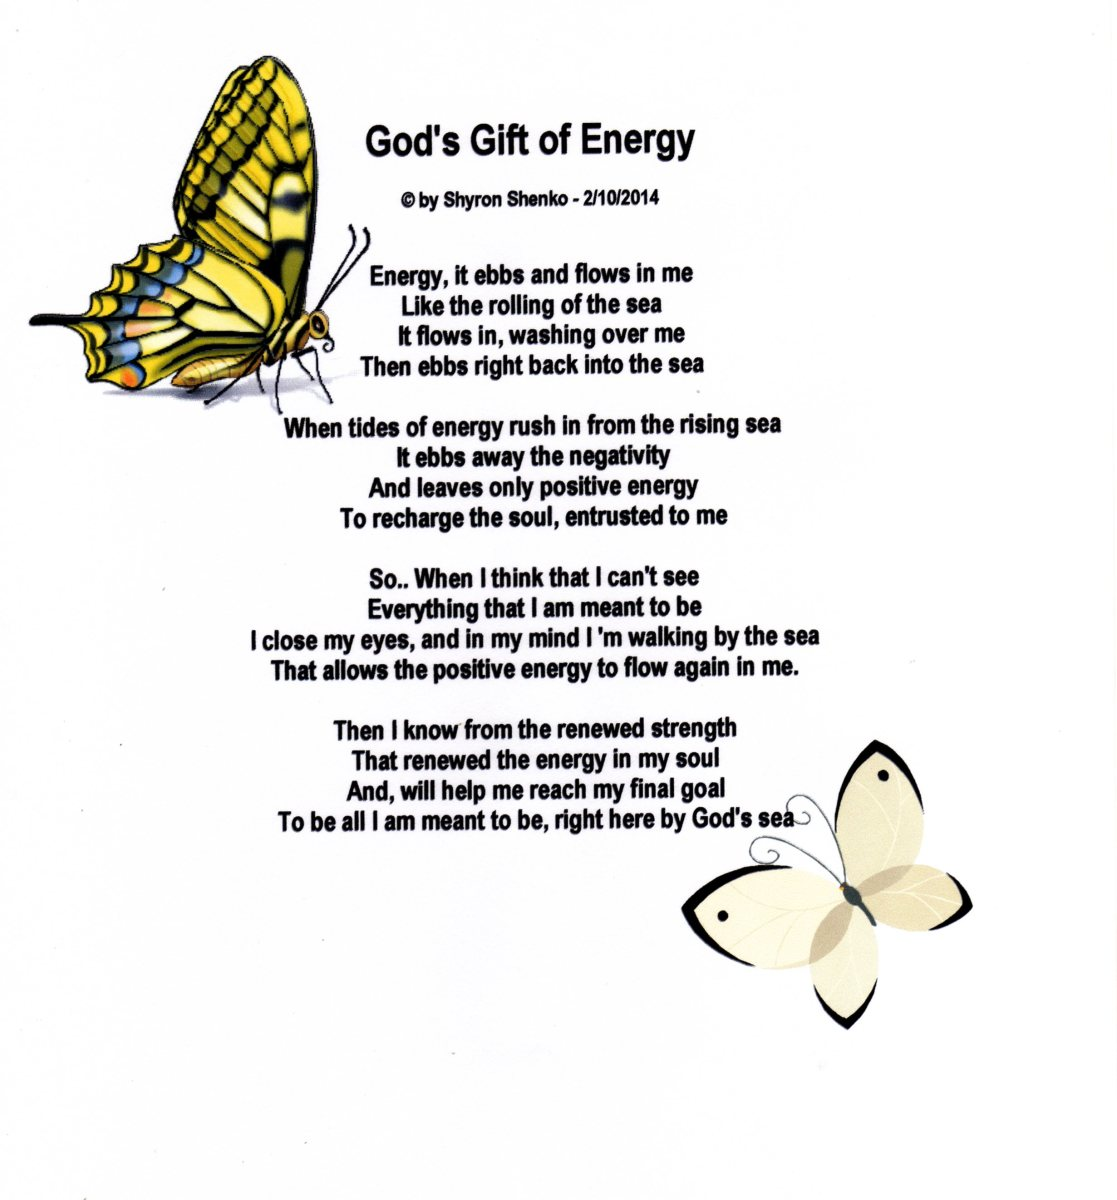 When I close my eyes I can be anywhere and receive God's gift of energy.